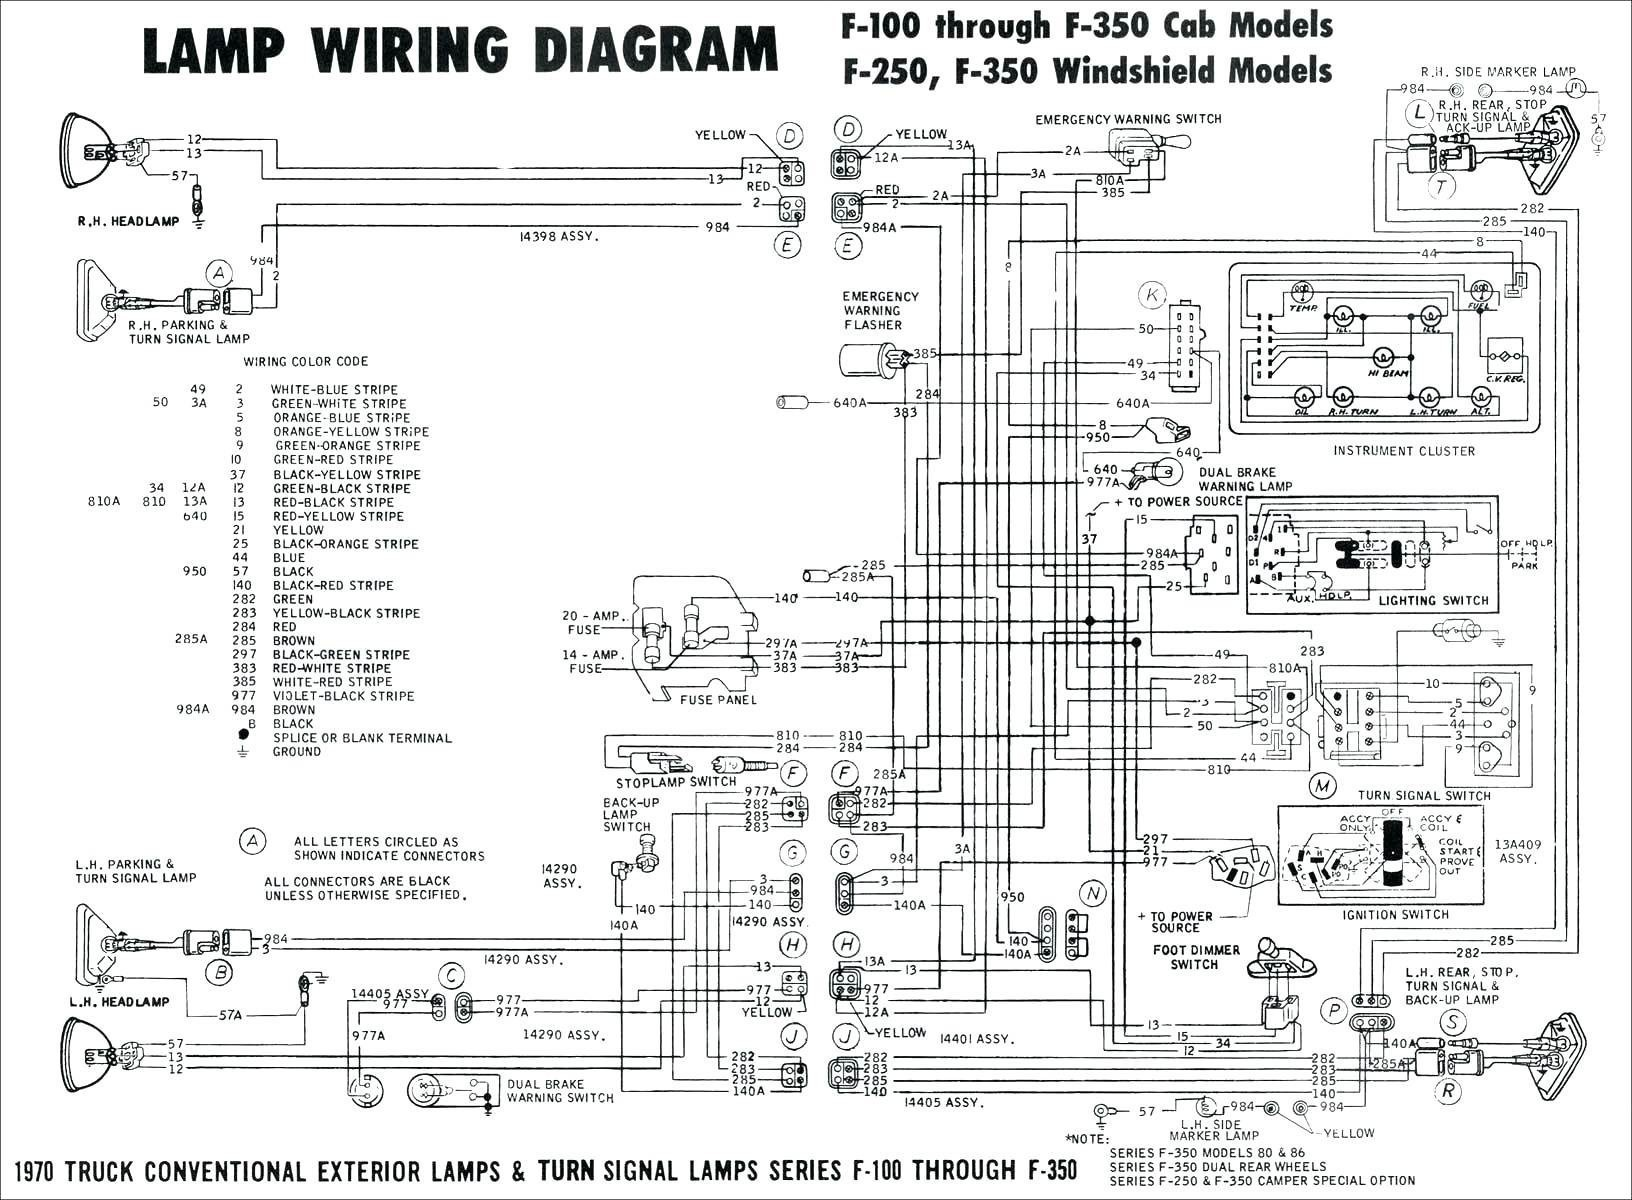 1998 Dodge Ram 3500 Wiring Diagram from static-assets.imageservice.cloud